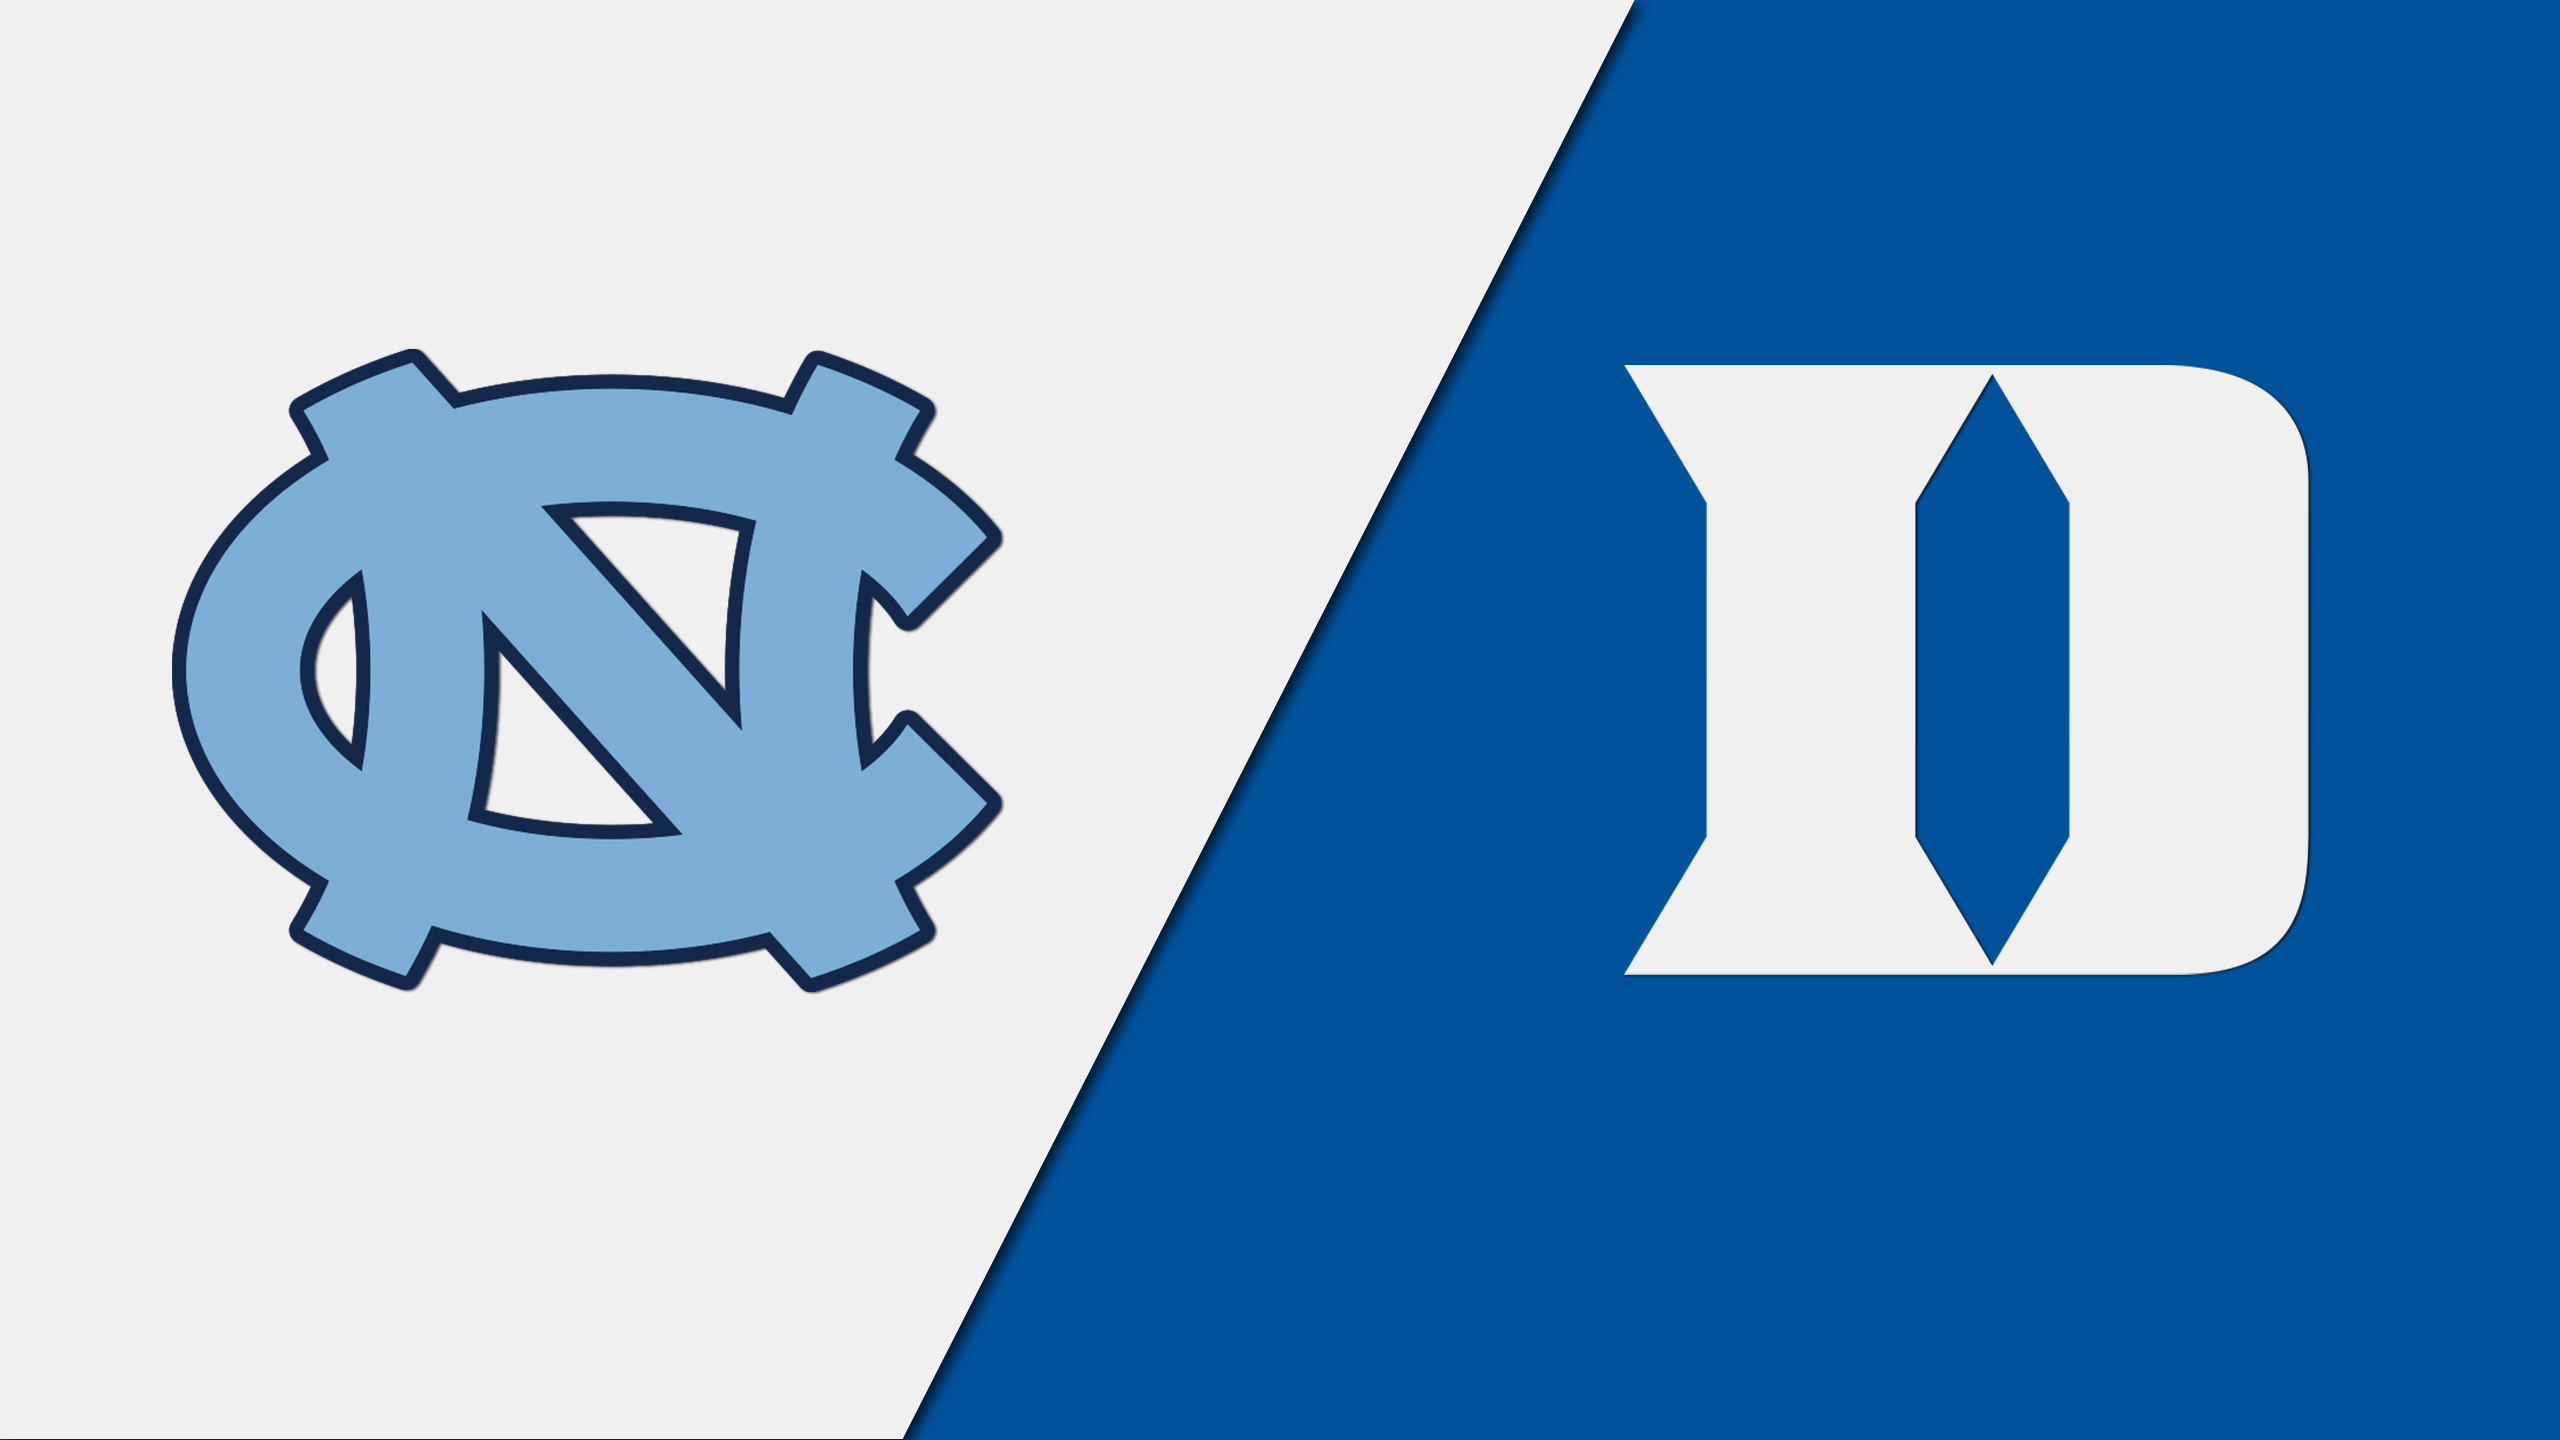 Layup Lines - #8 North Carolina vs. #1 Duke (M Basketball)